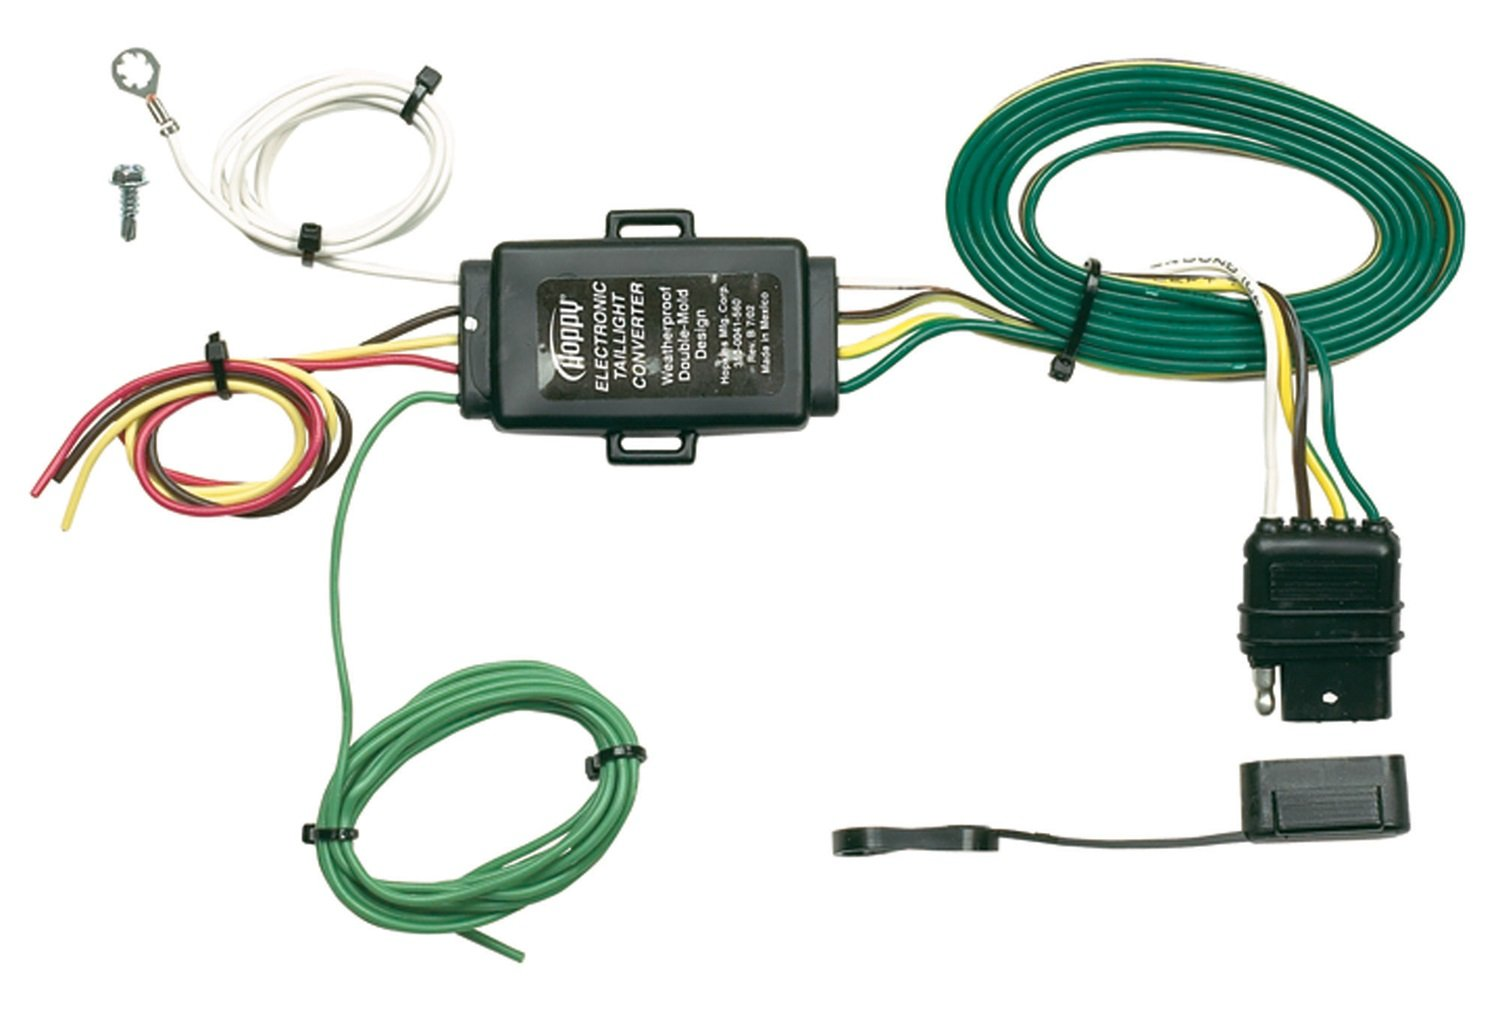 61WaHisQCLL._SL1500_ amazon com hopkins 48925 tail light converter with 4 wire flat hopkins trailer connector wiring diagram at mifinder.co